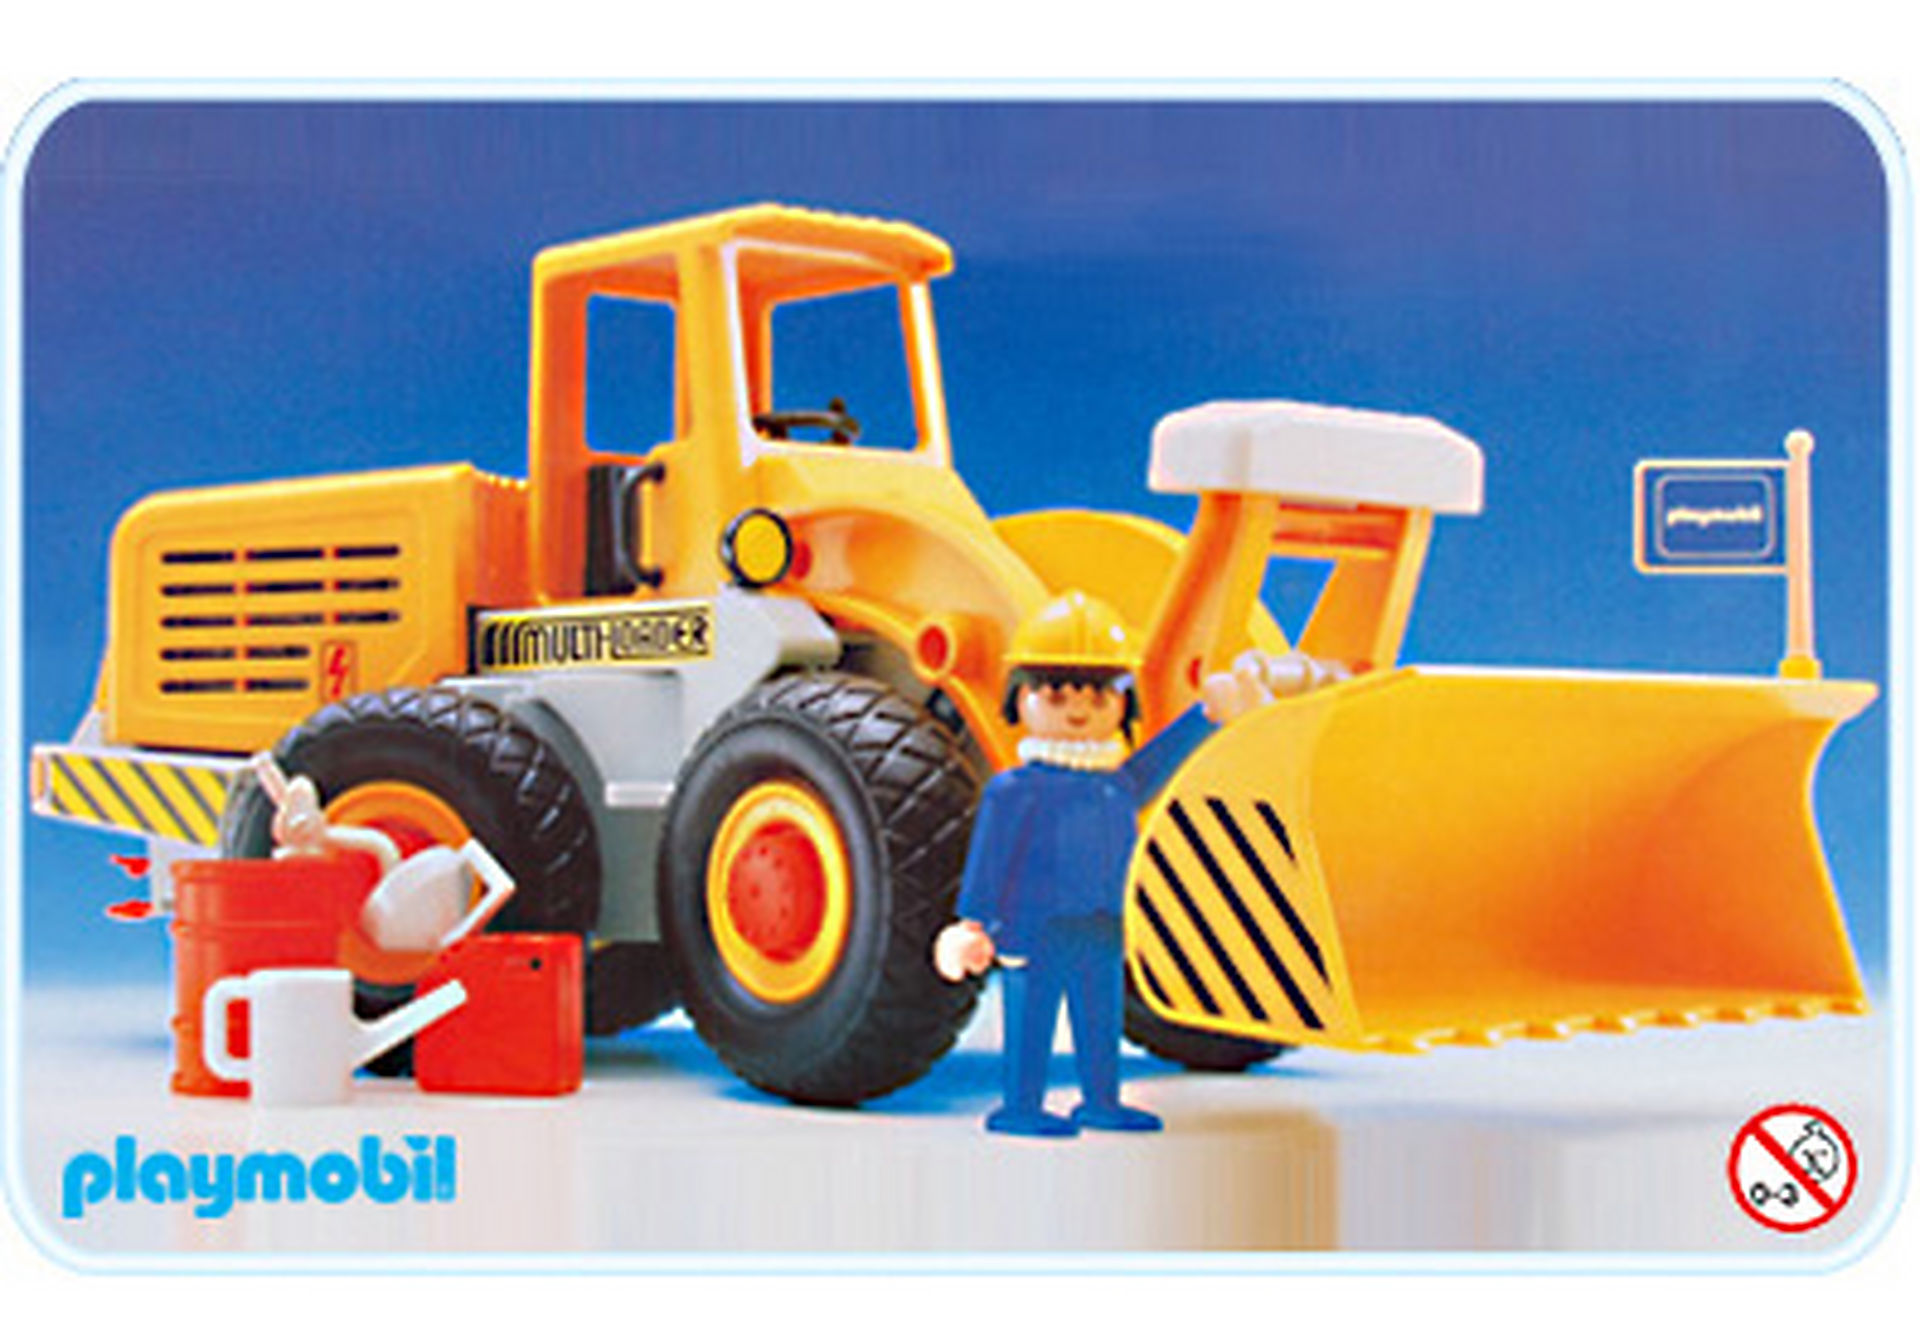 http://media.playmobil.com/i/playmobil/3458-A_product_detail/Bull chargeur